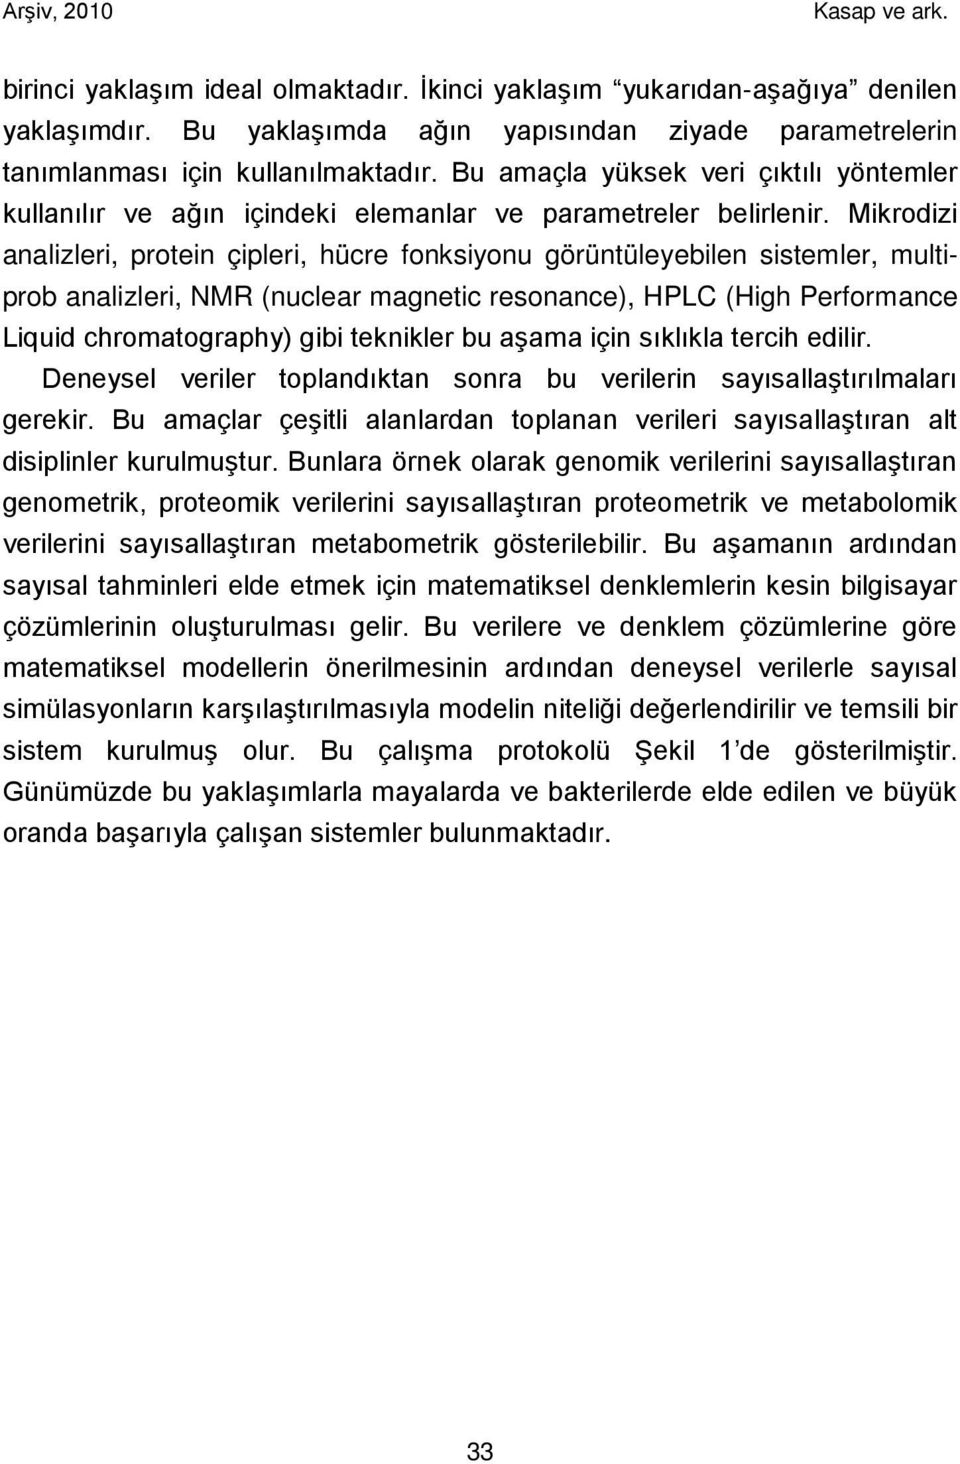 Mikrodizi analizleri, protein çipleri, hücre fonksiyonu görüntüleyebilen sistemler, multiprob analizleri, NMR (nuclear magnetic resonance), HPLC (High Performance Liquid chromatography) gibi